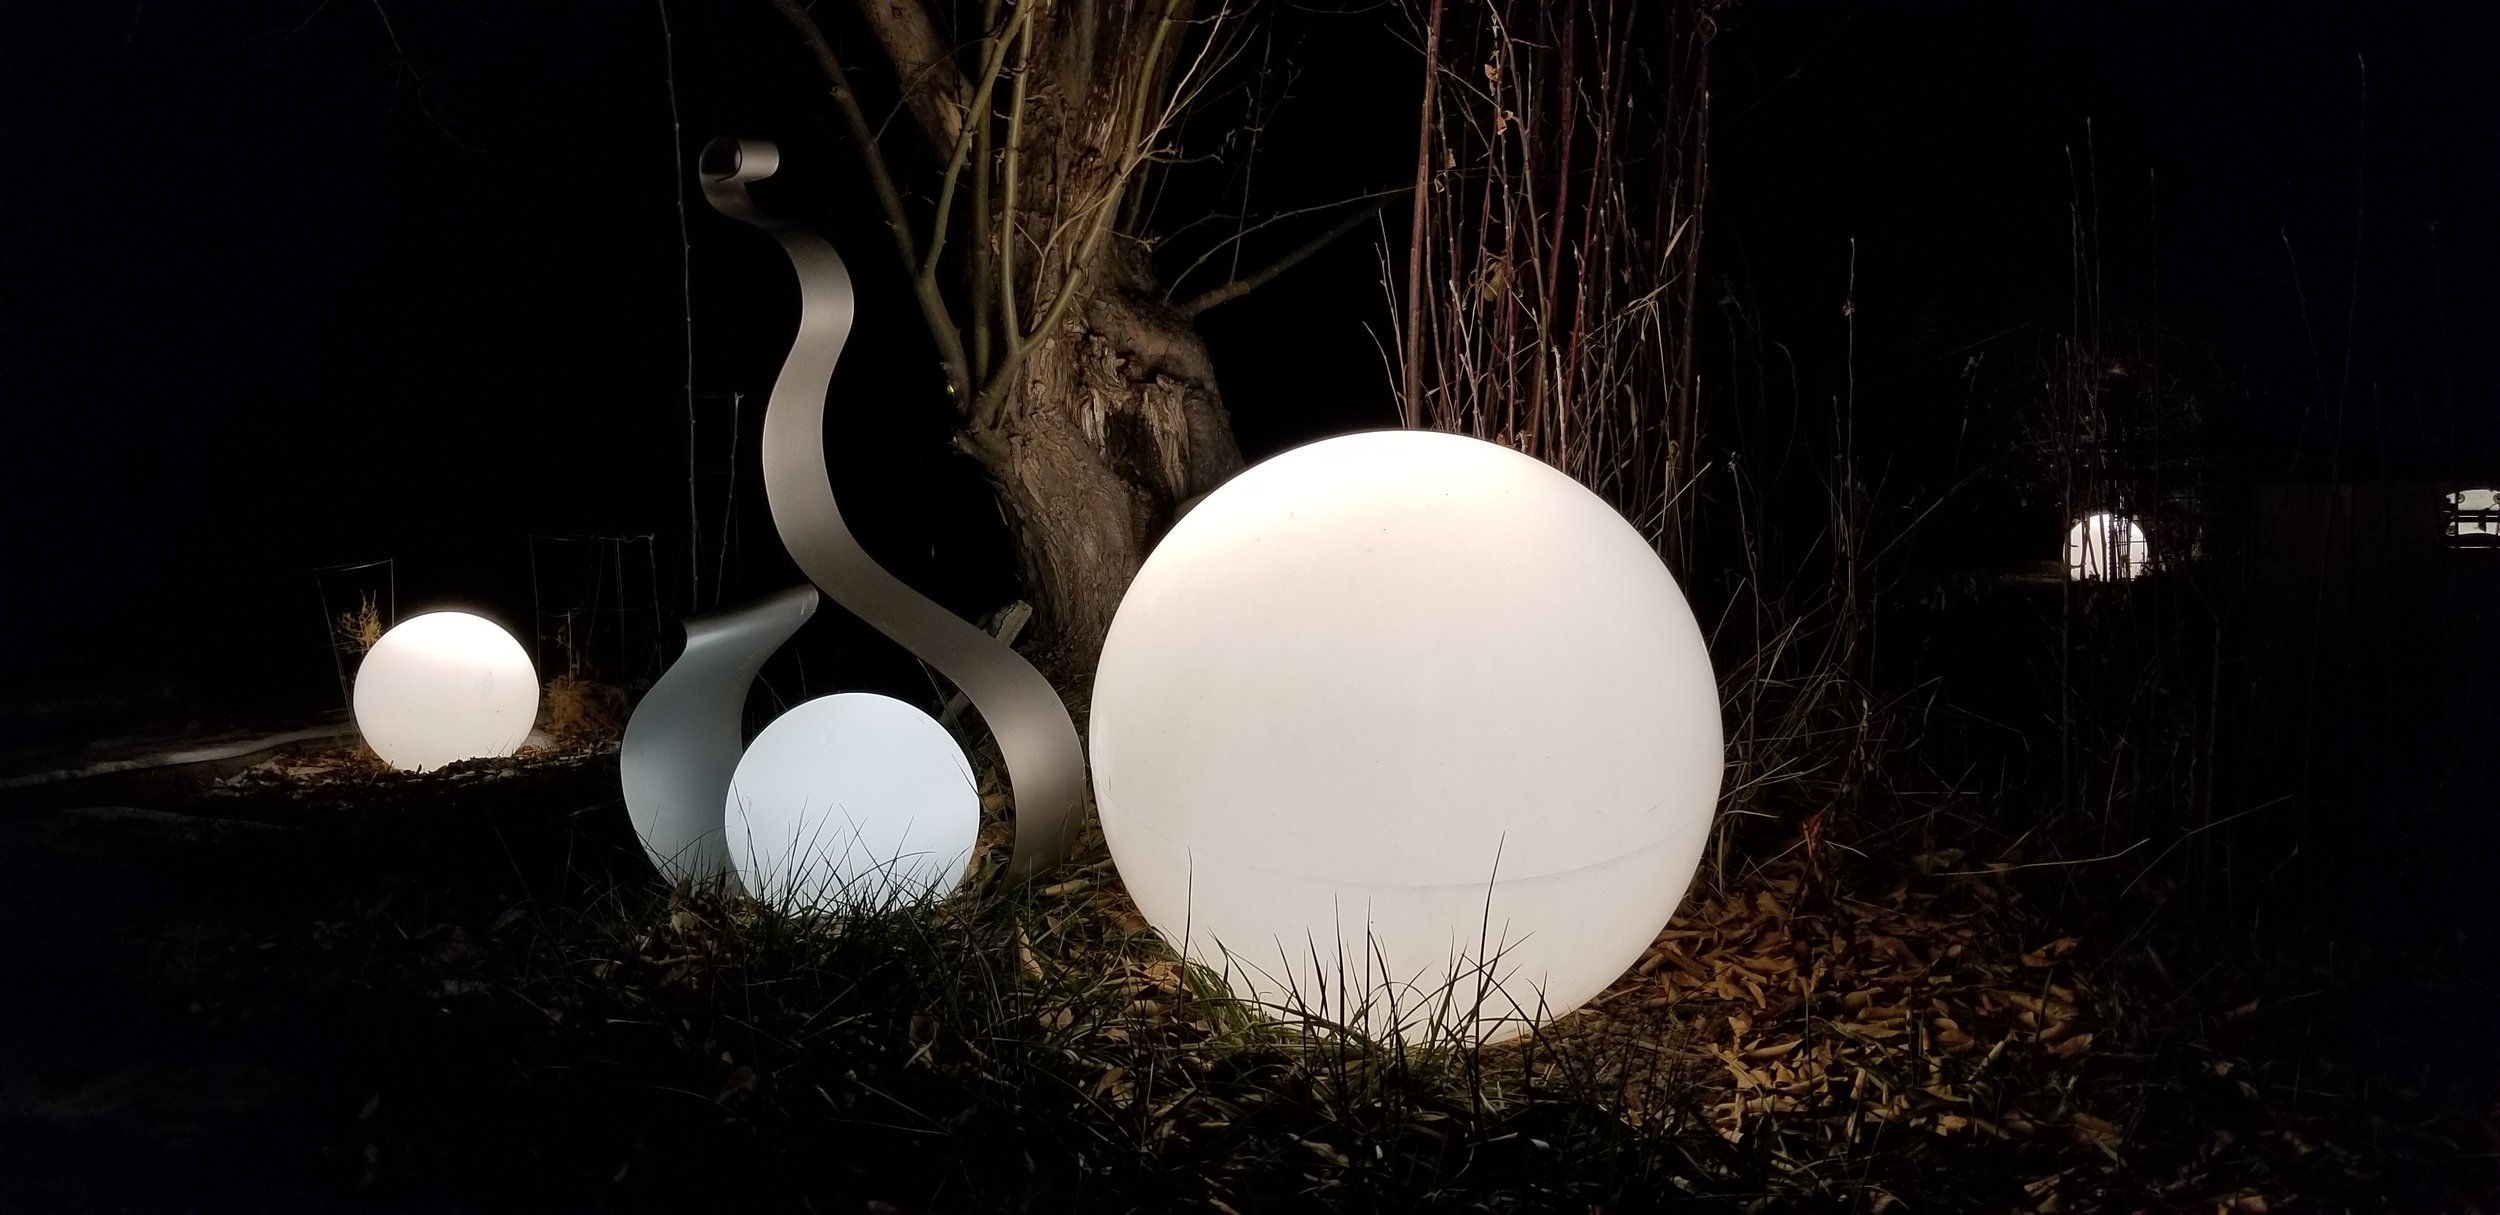 Globe landscape lighting.